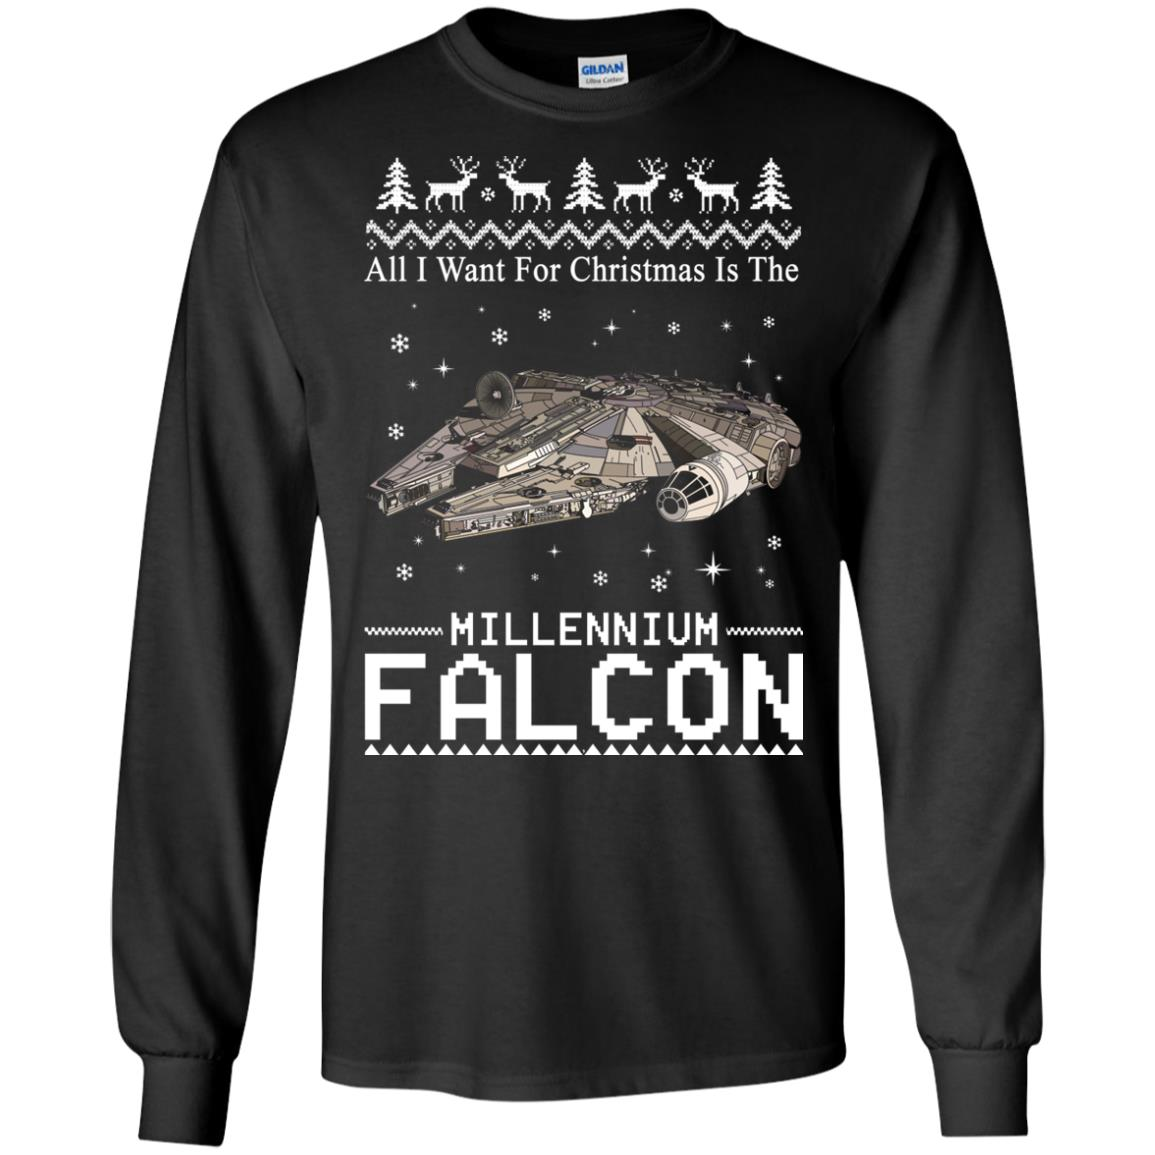 image 2132 - All I Want For Christmas is The Millennium Falcon Sweater, Ugly Sweatshirt